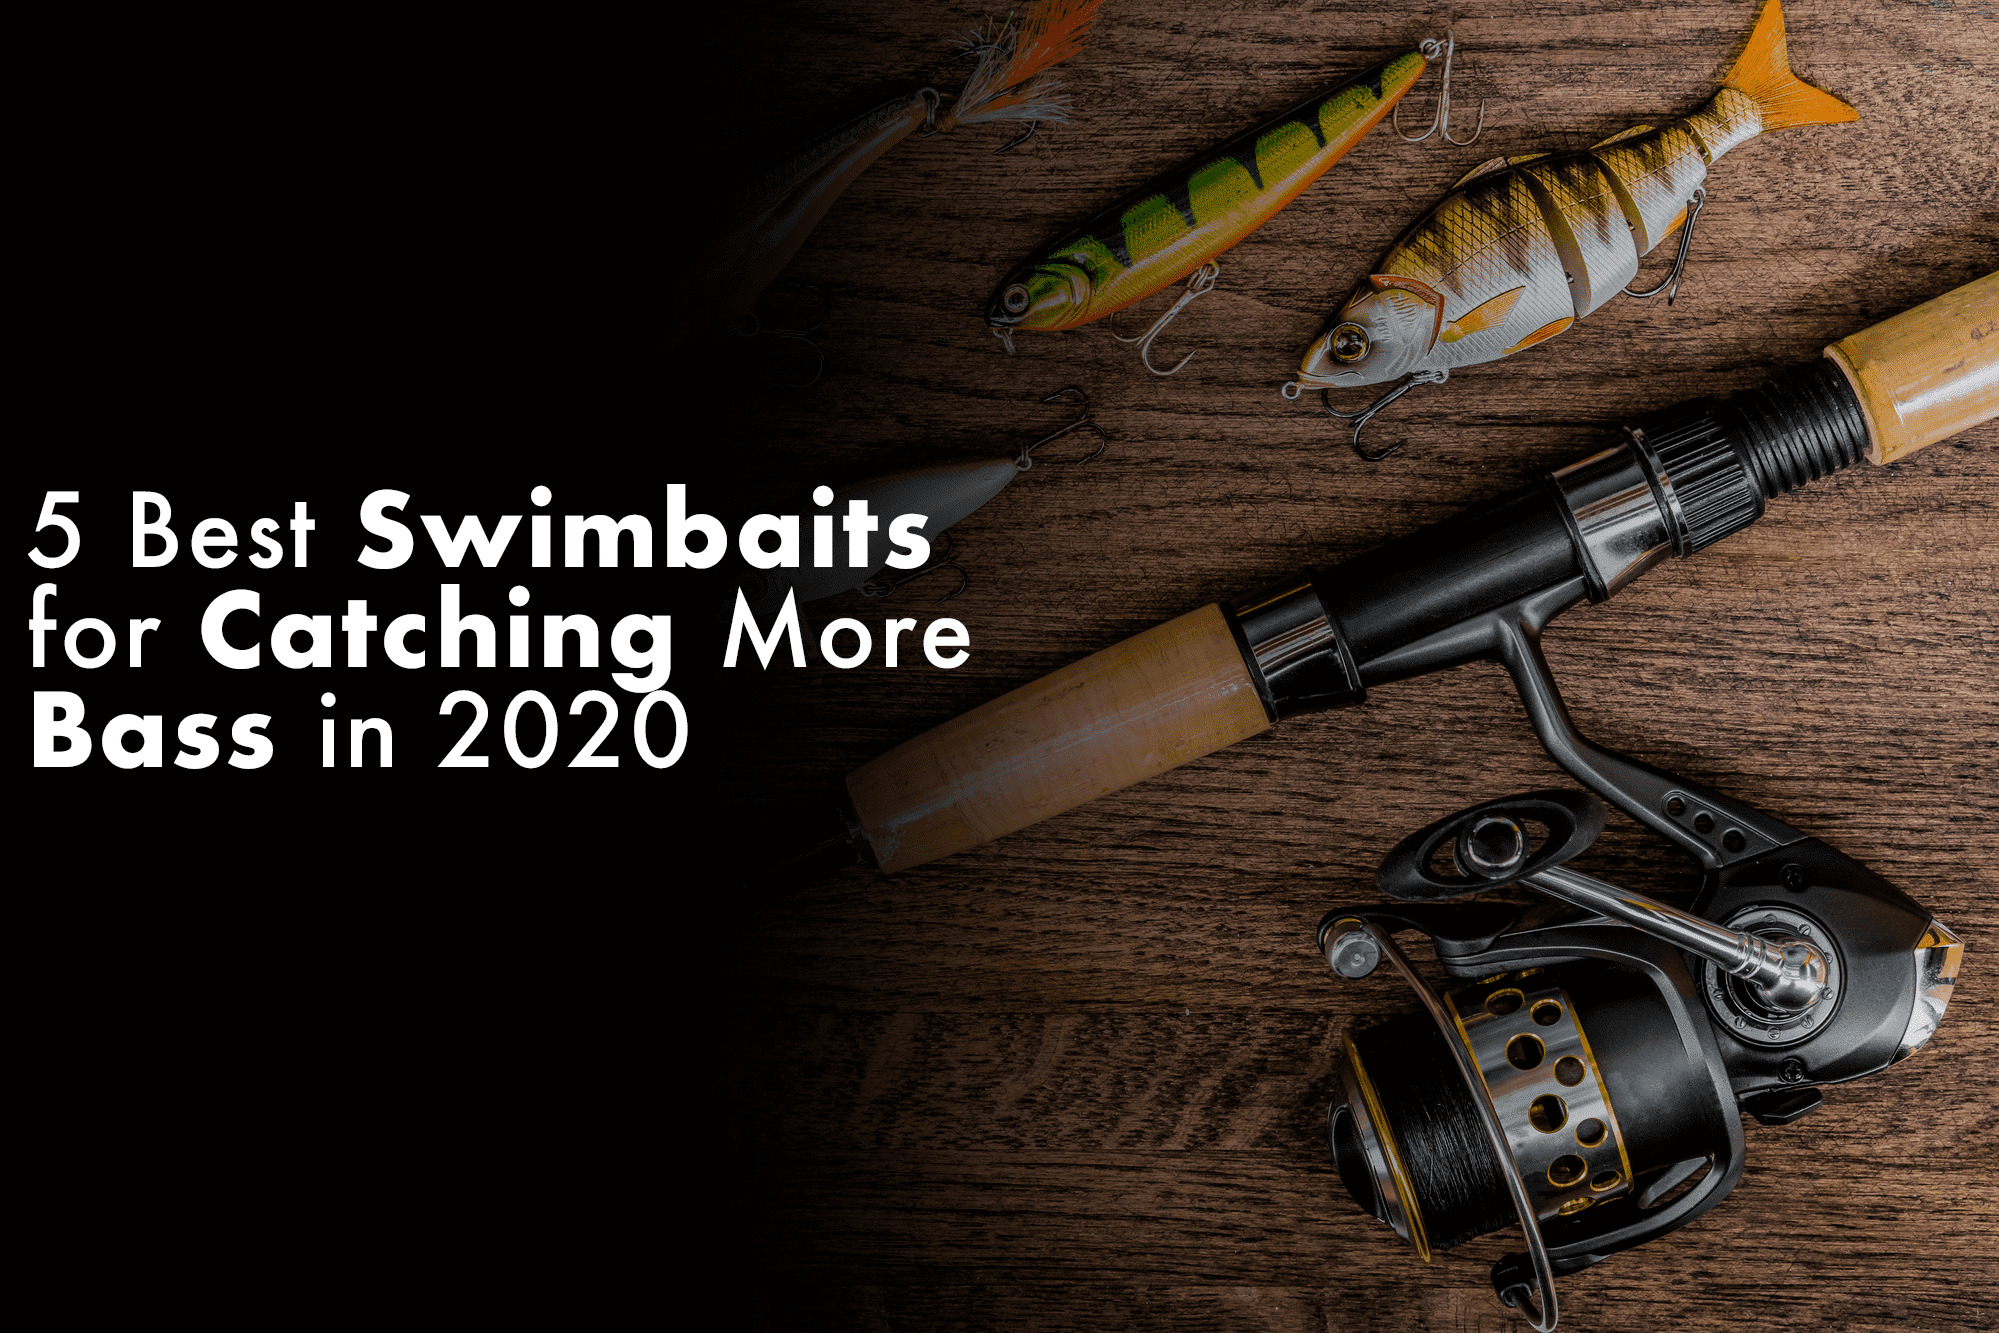 5 Best Swimbaits for Catching More Bass in 2020